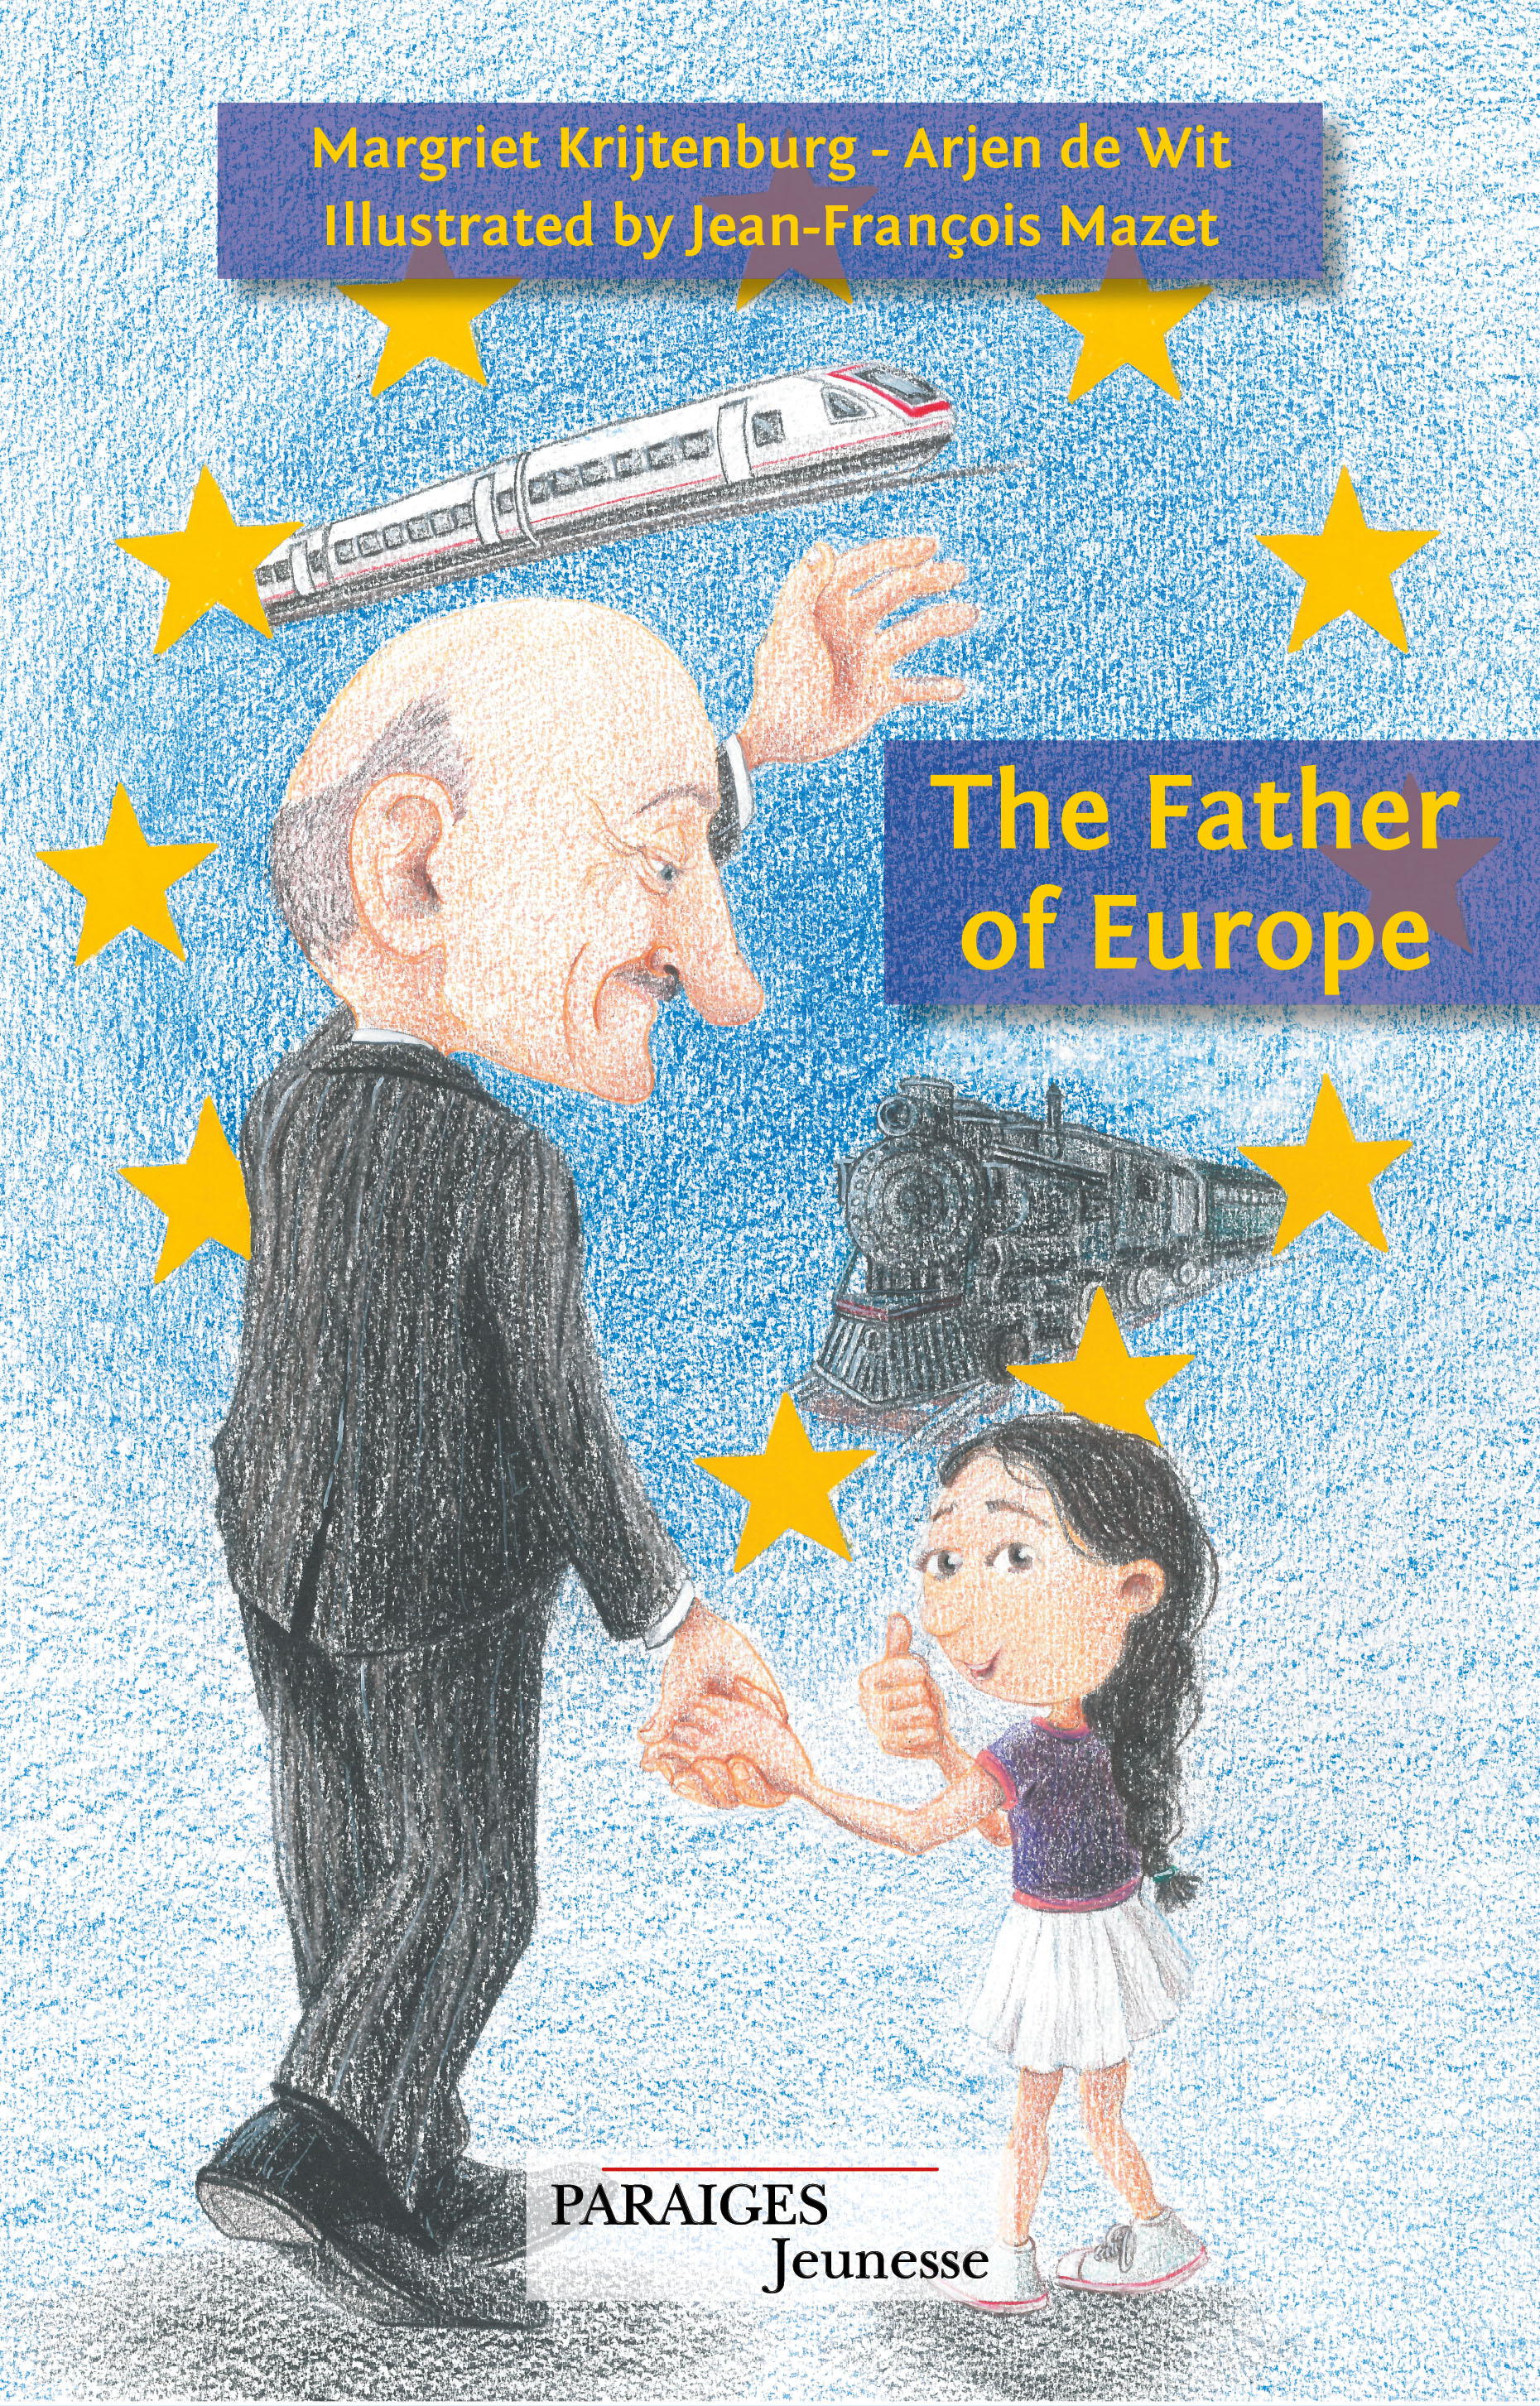 The Father of Europe